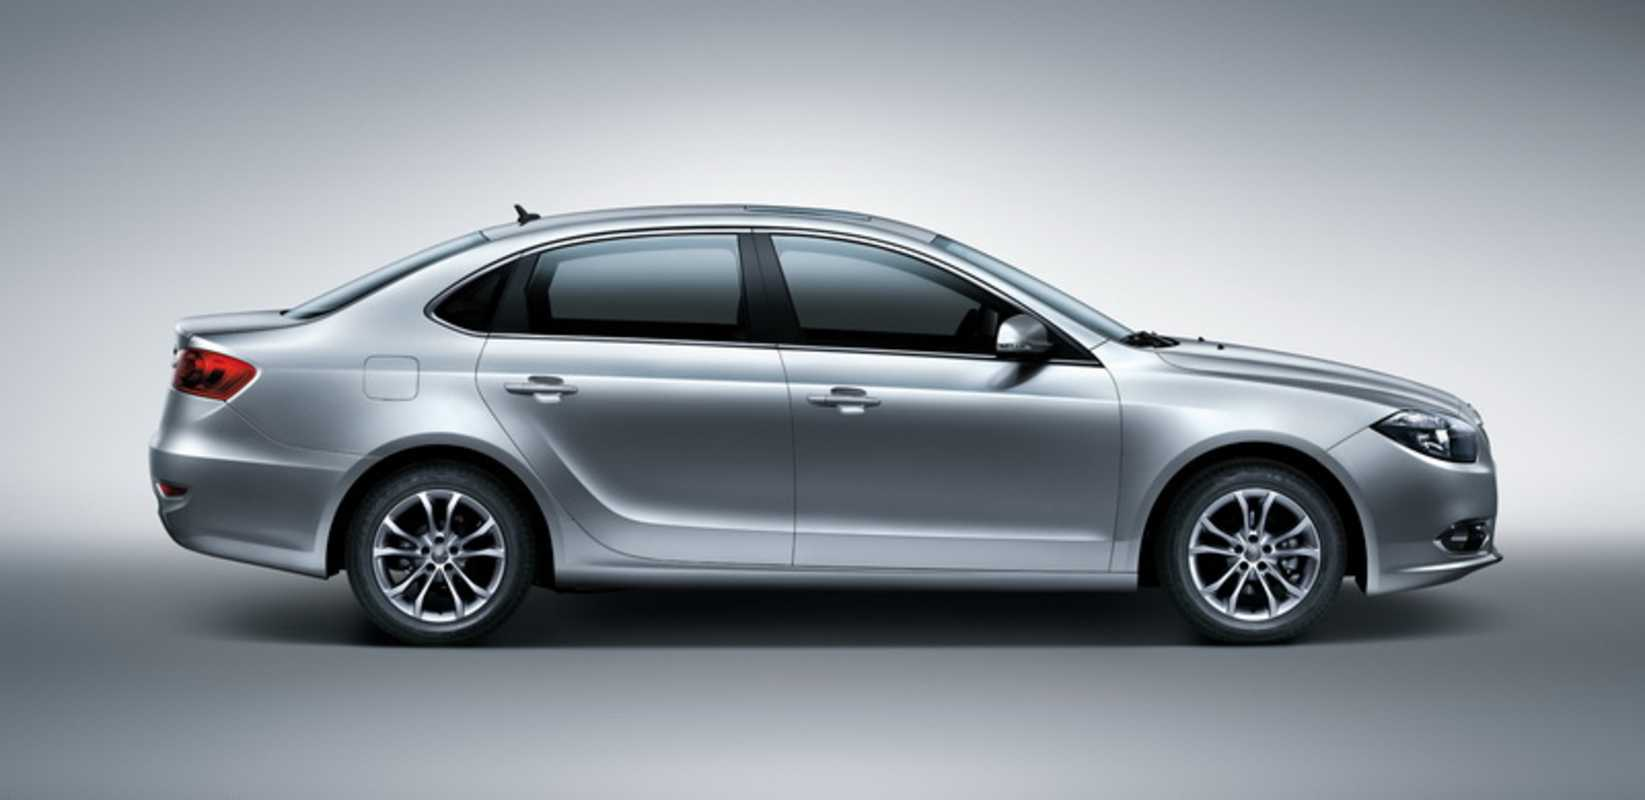 Car Brilliance H530: review, specifications and reviews 74